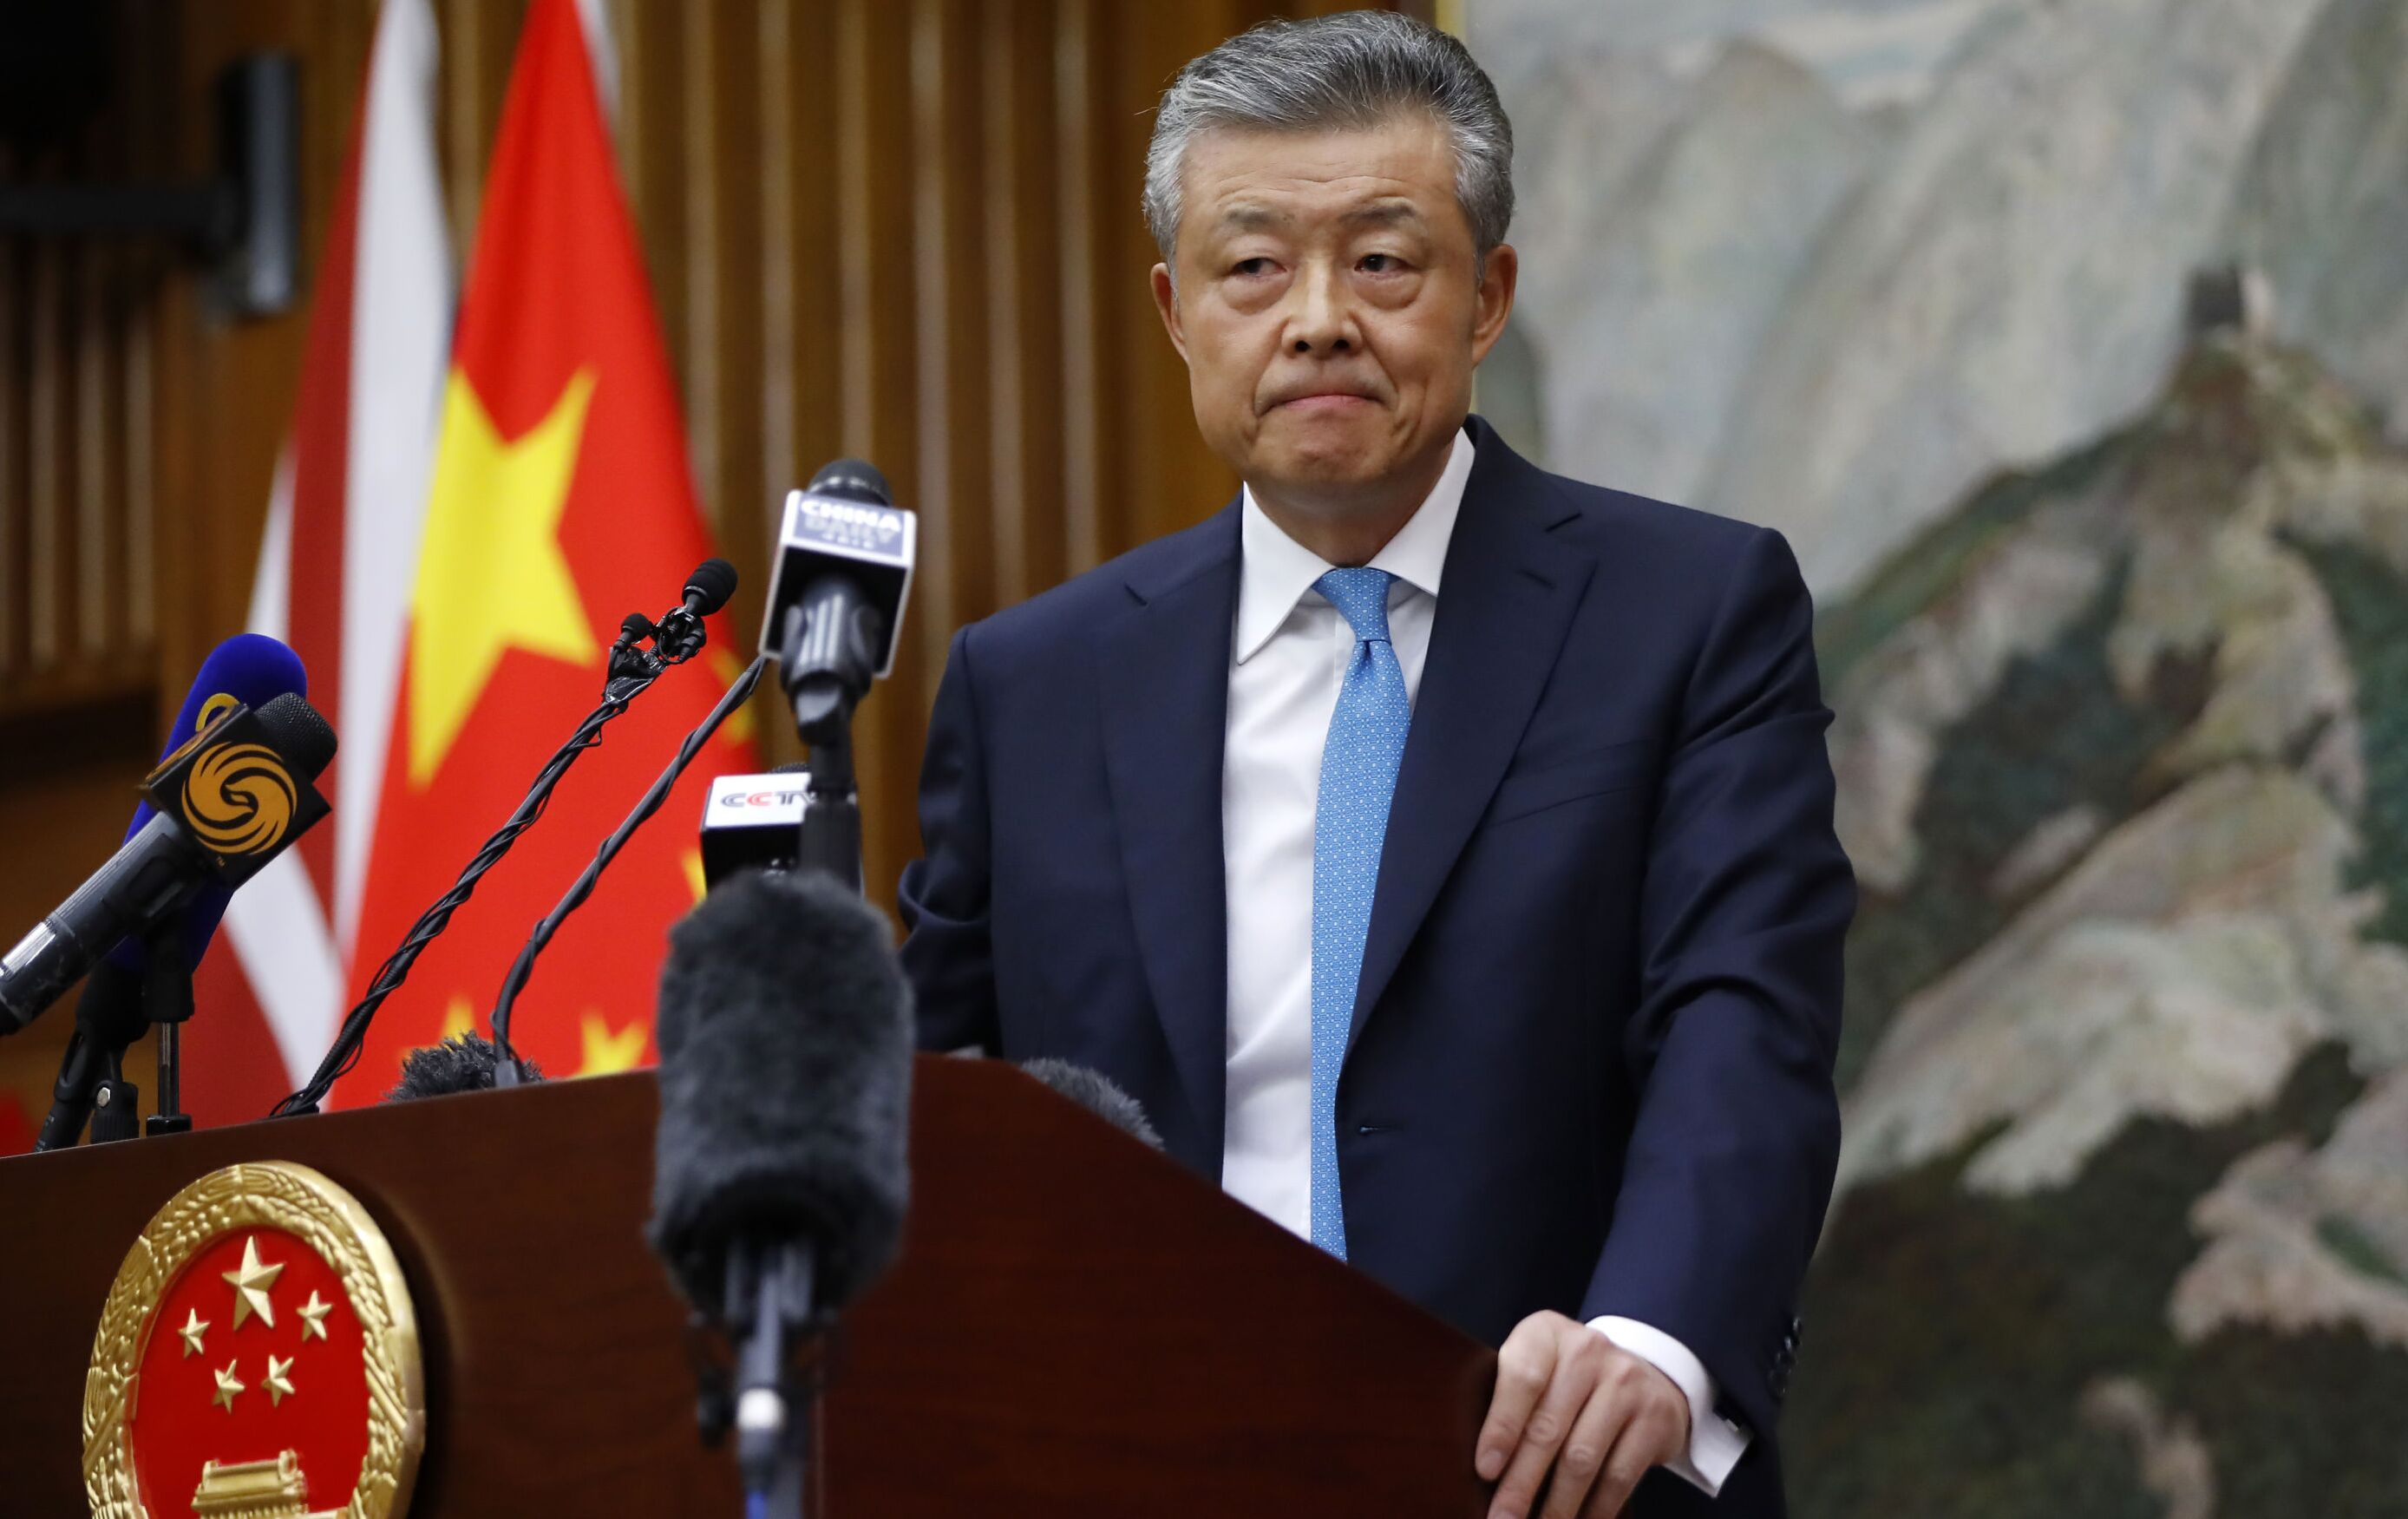 China's ambassador to Britain Liu Xiaoming takes questions from members of the media at the Chinese Embassy in London on February 6, 2020